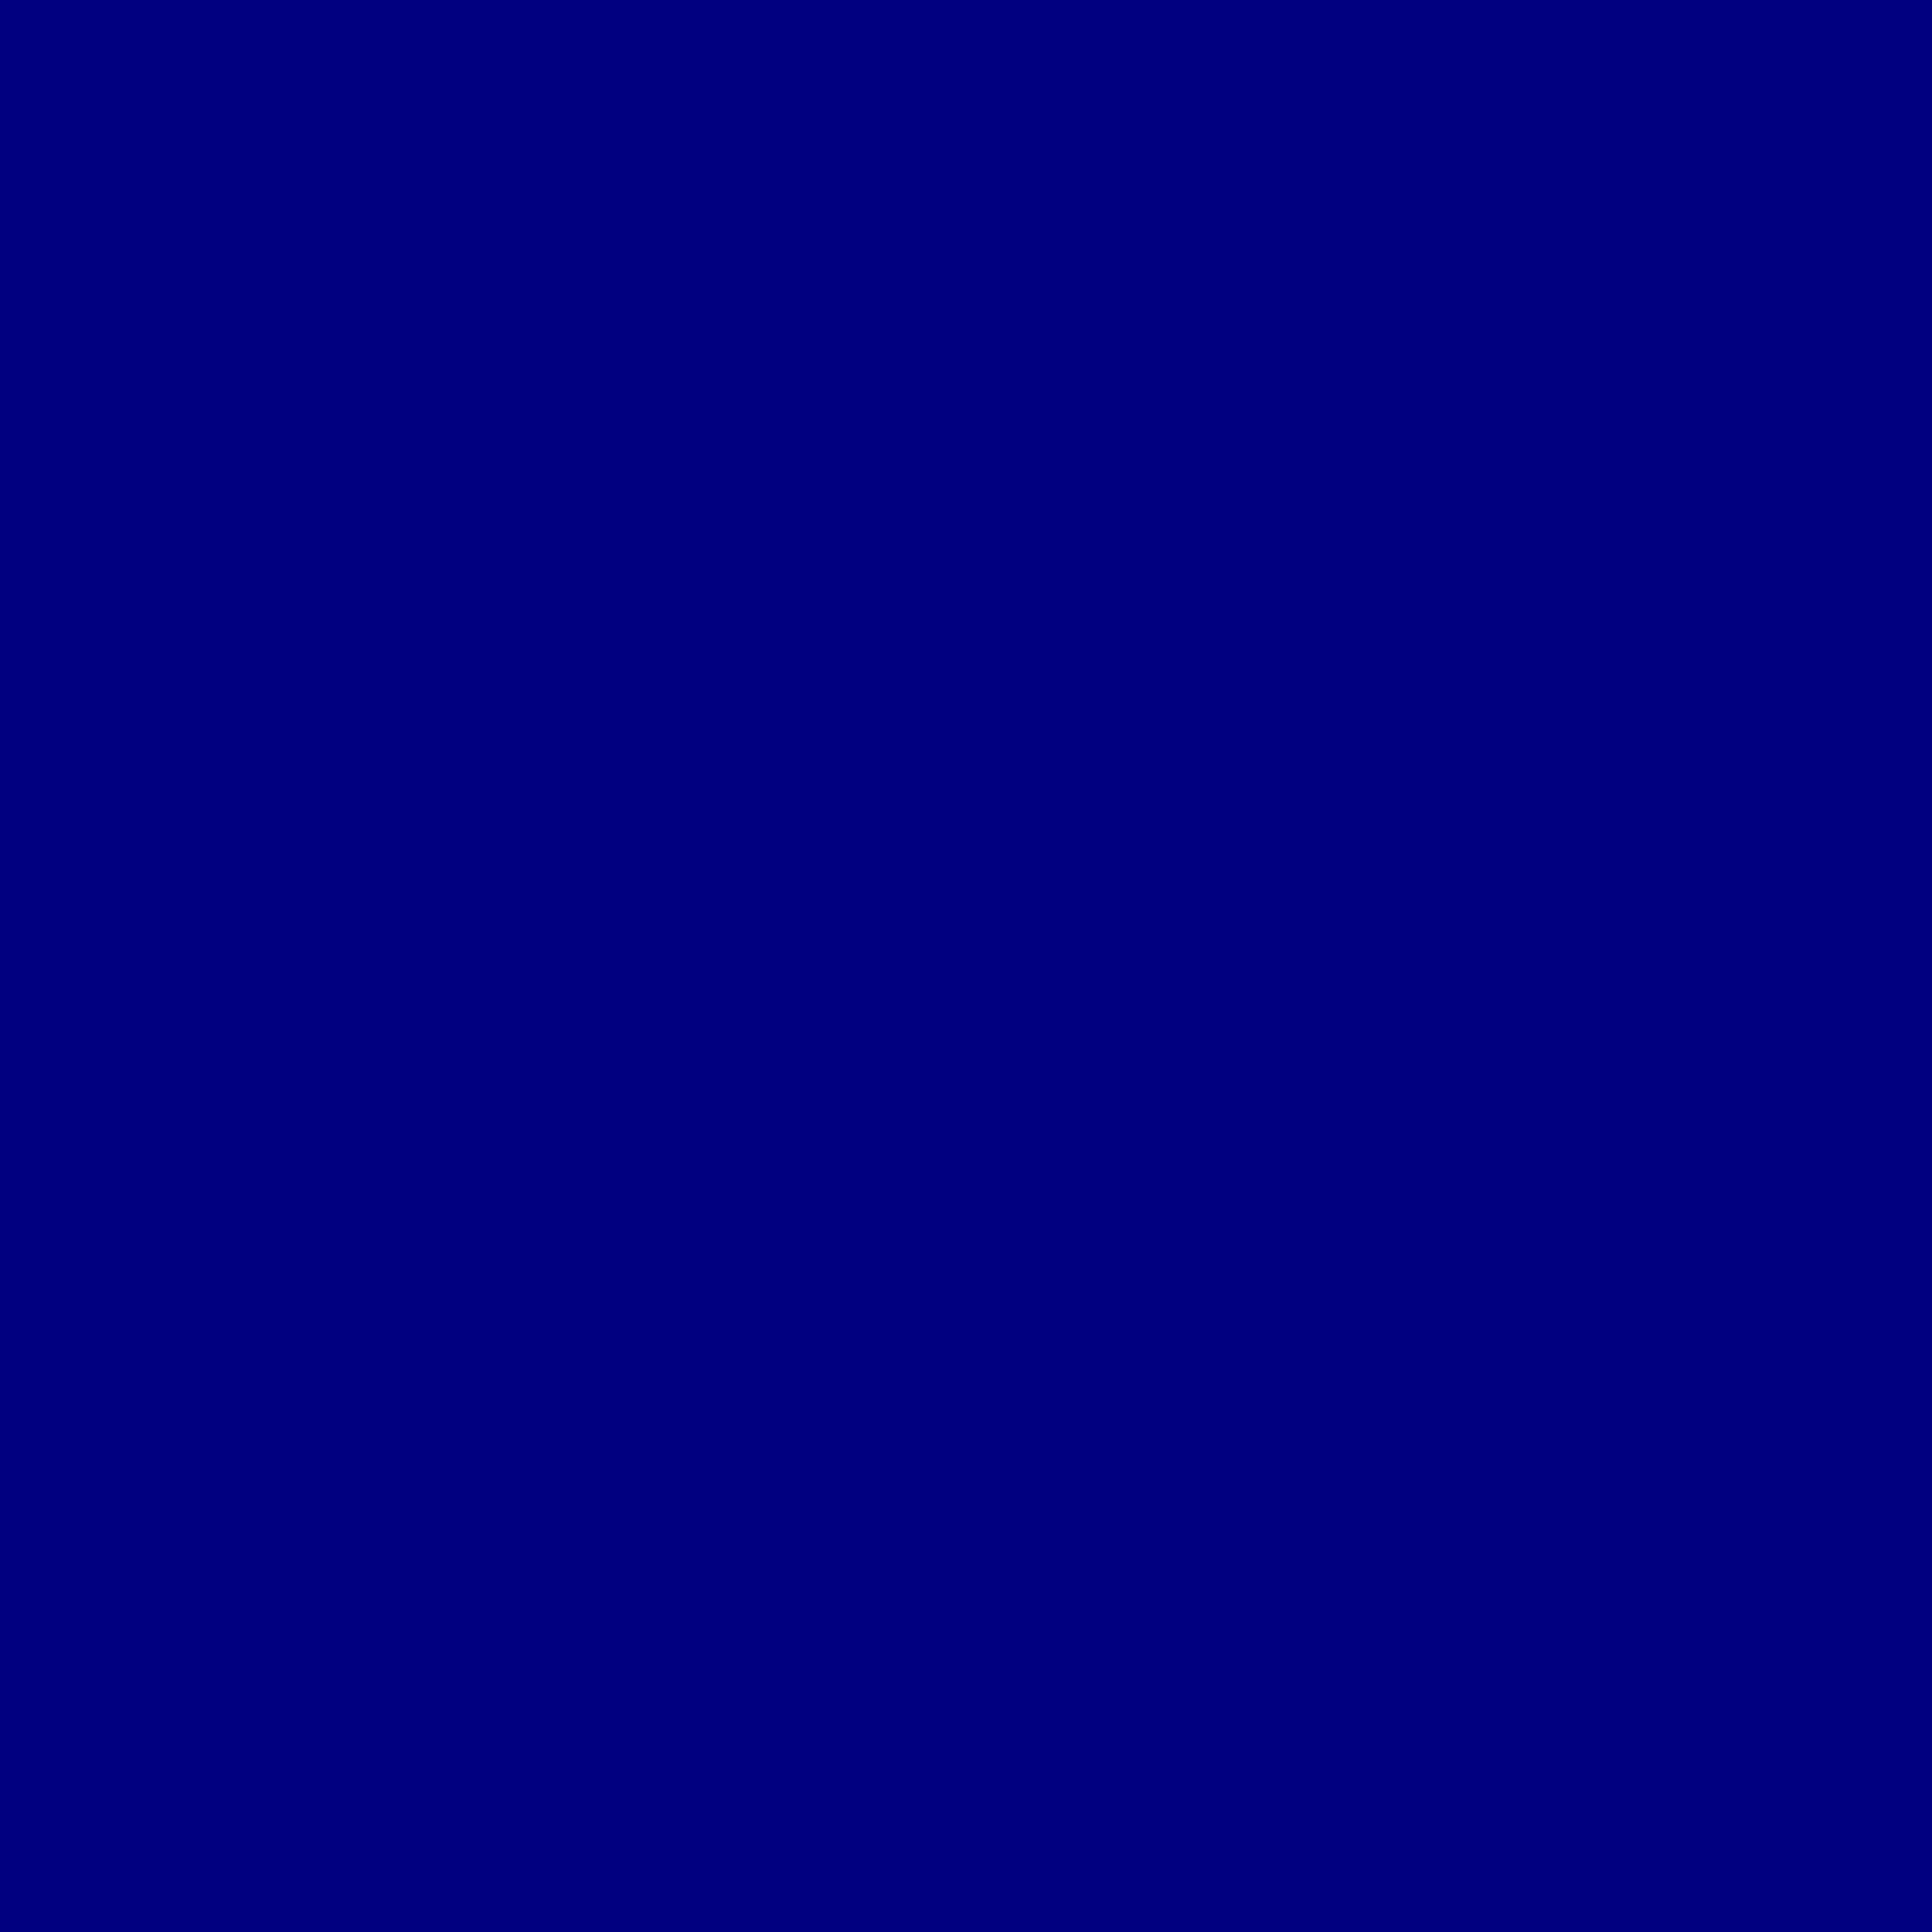 Blue - Wikipedia, the free encyclopedia | COLOR : blue ...